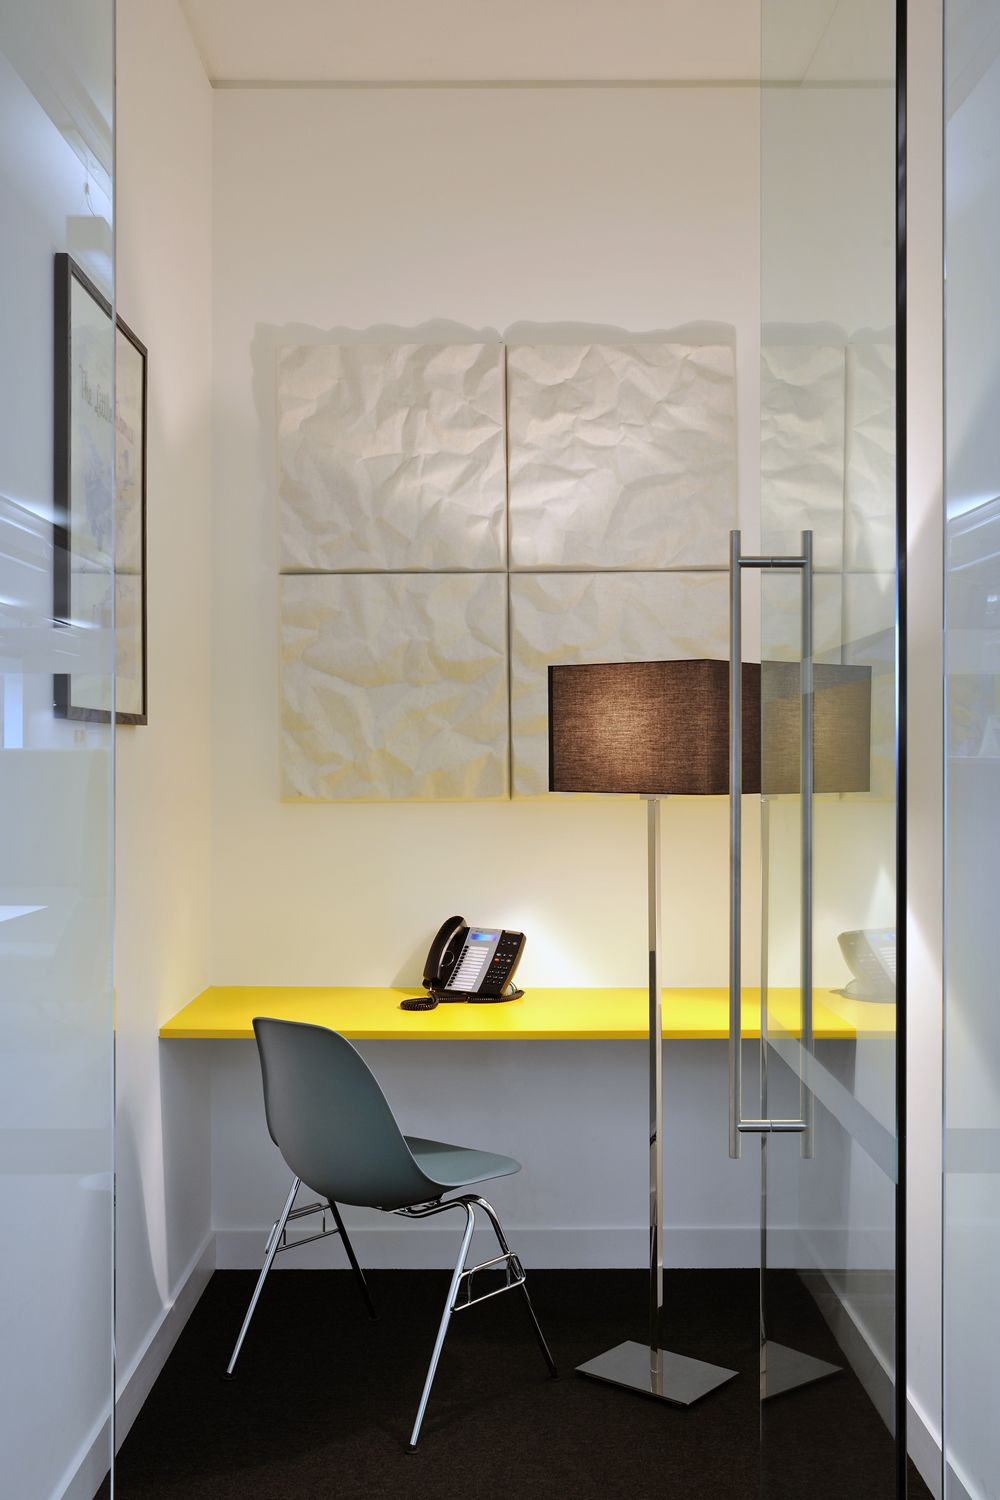 Inspirational office design | Room, Office designs and Interior office